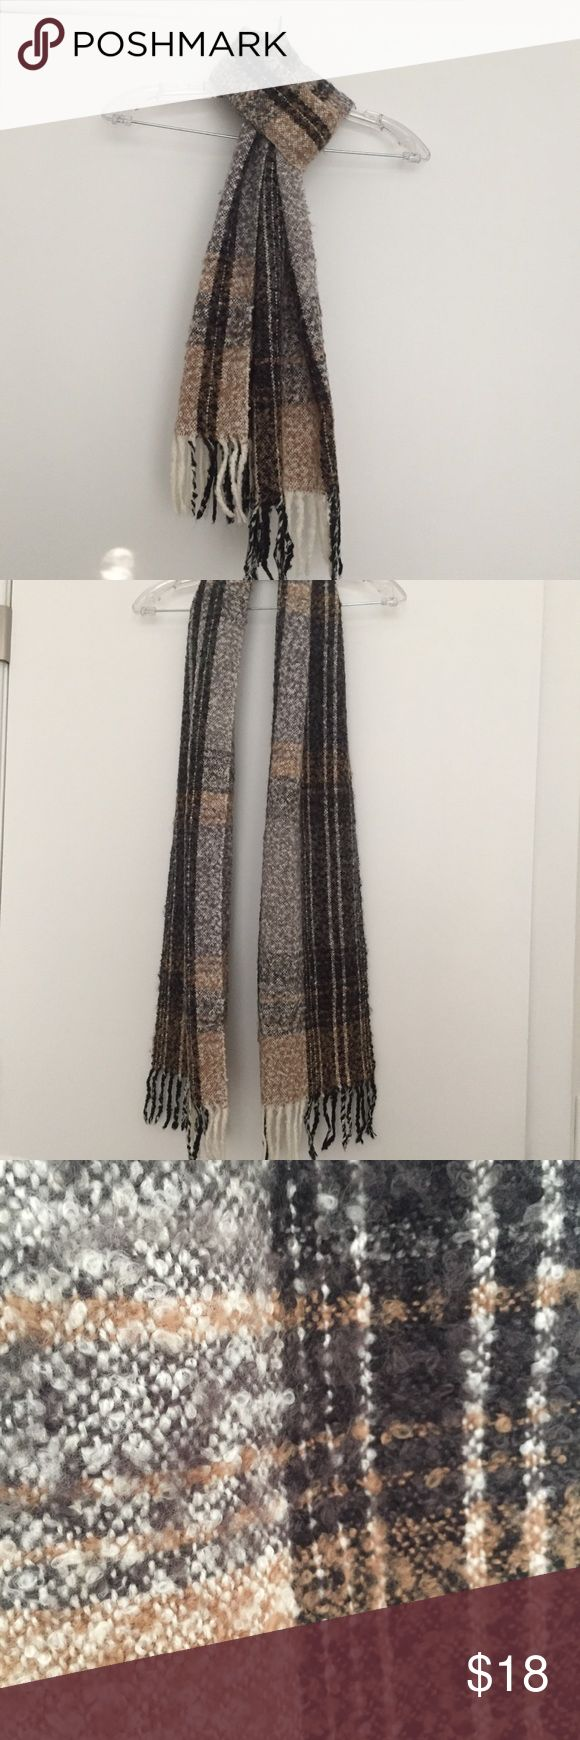 J.Jill fall scarf Tan, Black, Cream scarf with a wool look. Soft and comfortable. No smoking, no pets. Excellent condition! J. Jill Accessories Scarves & Wraps